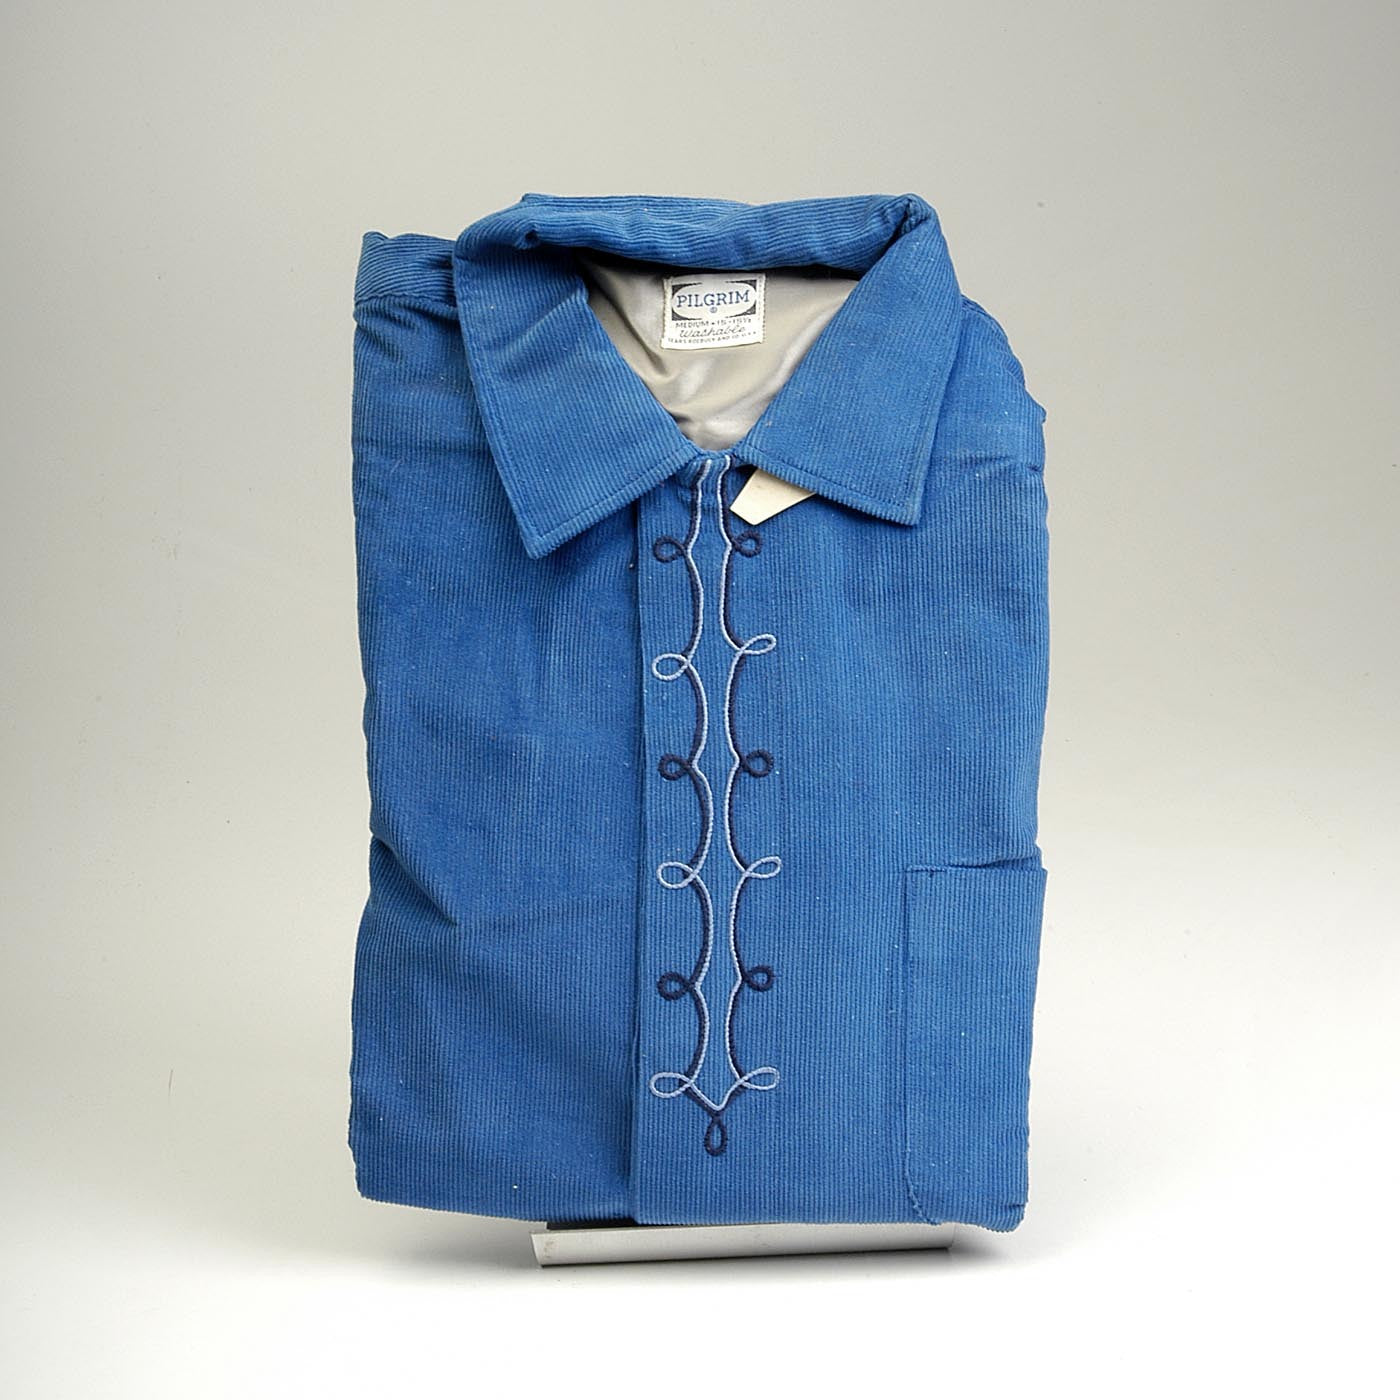 Deadstock 1950s Men's Pilgrim Blue Corduroy Shirt with a Loop Collar